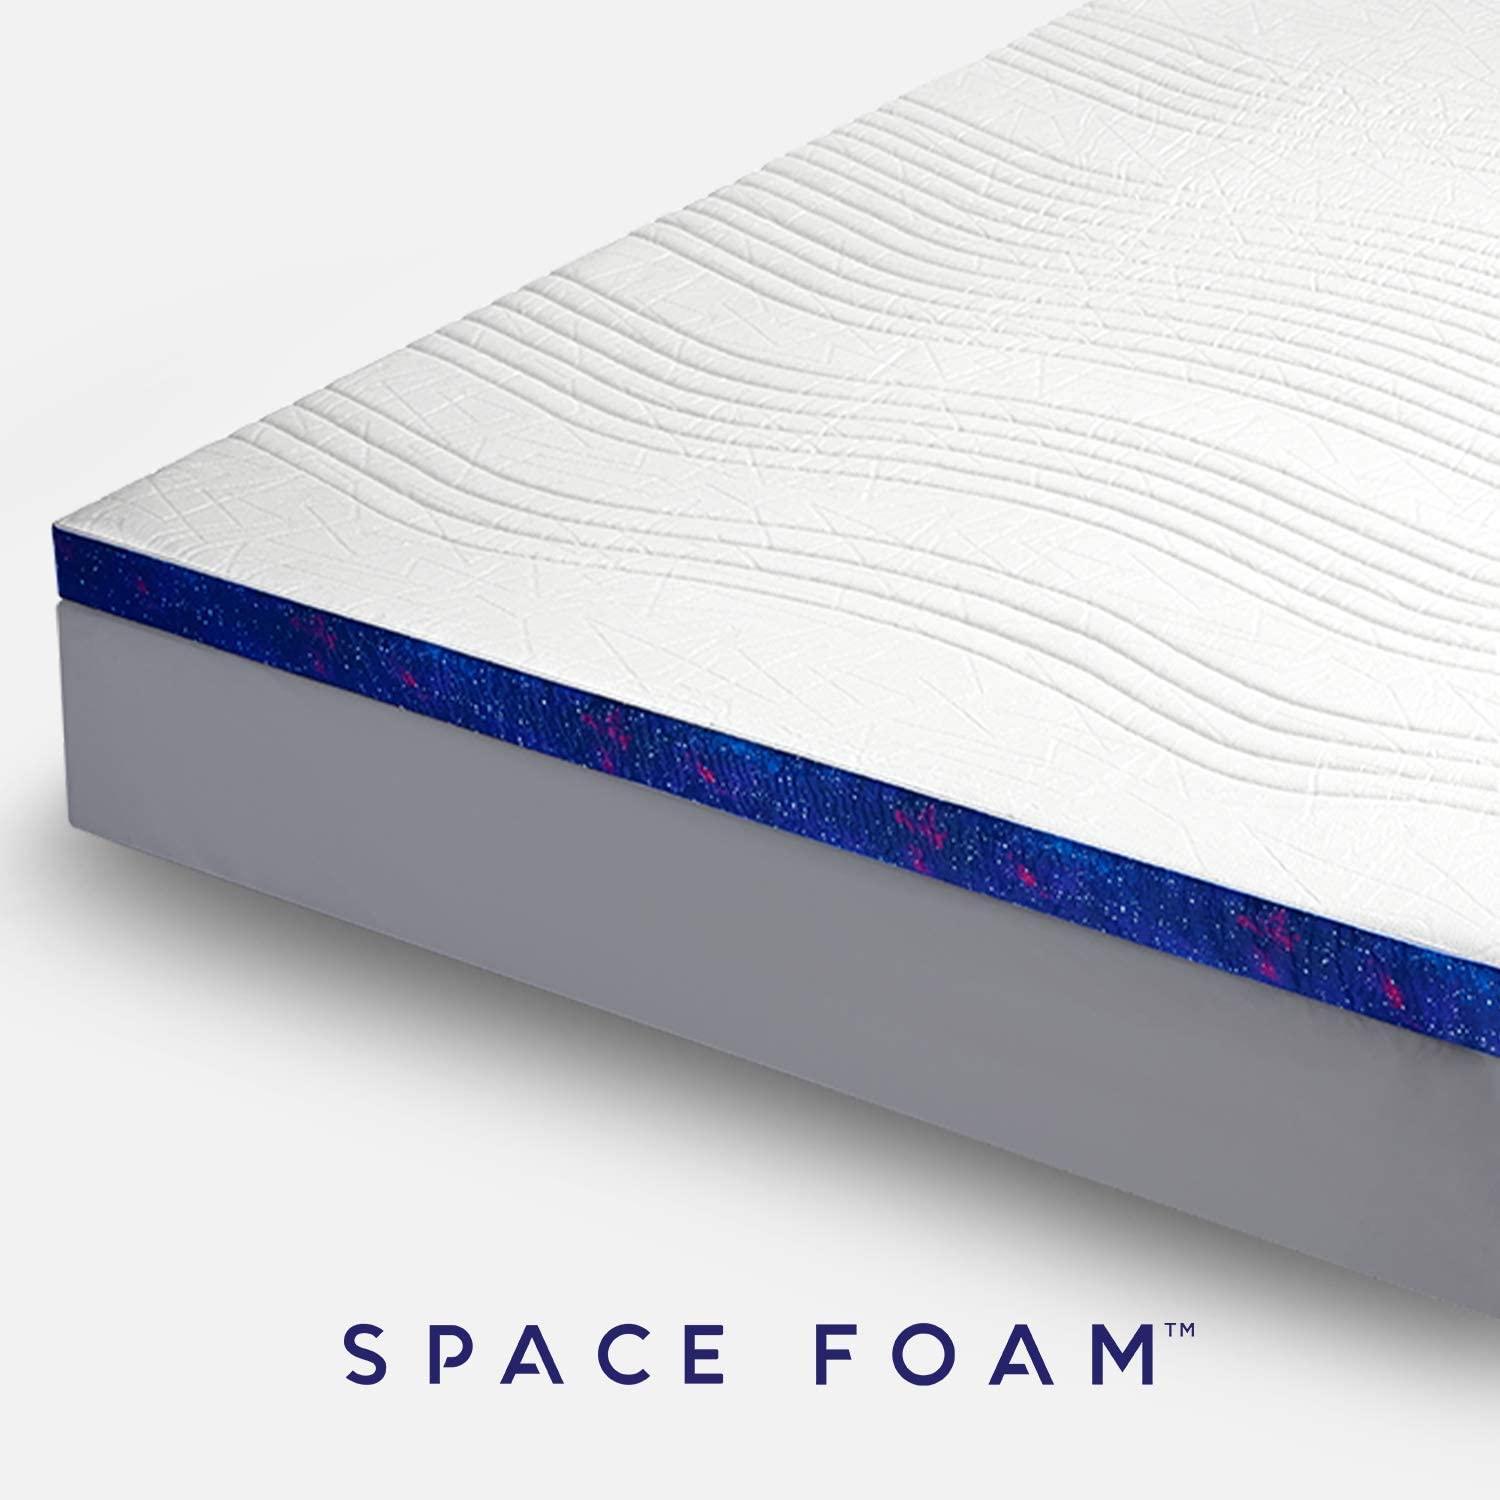 Space Foam Cooling Gel Infused 3-Inch Thick Mattress Topper Supportive for Deep Sleep Made of Ventilated and Breathable CertiPUR US Certified Memory Foam with IceFibre Cover King